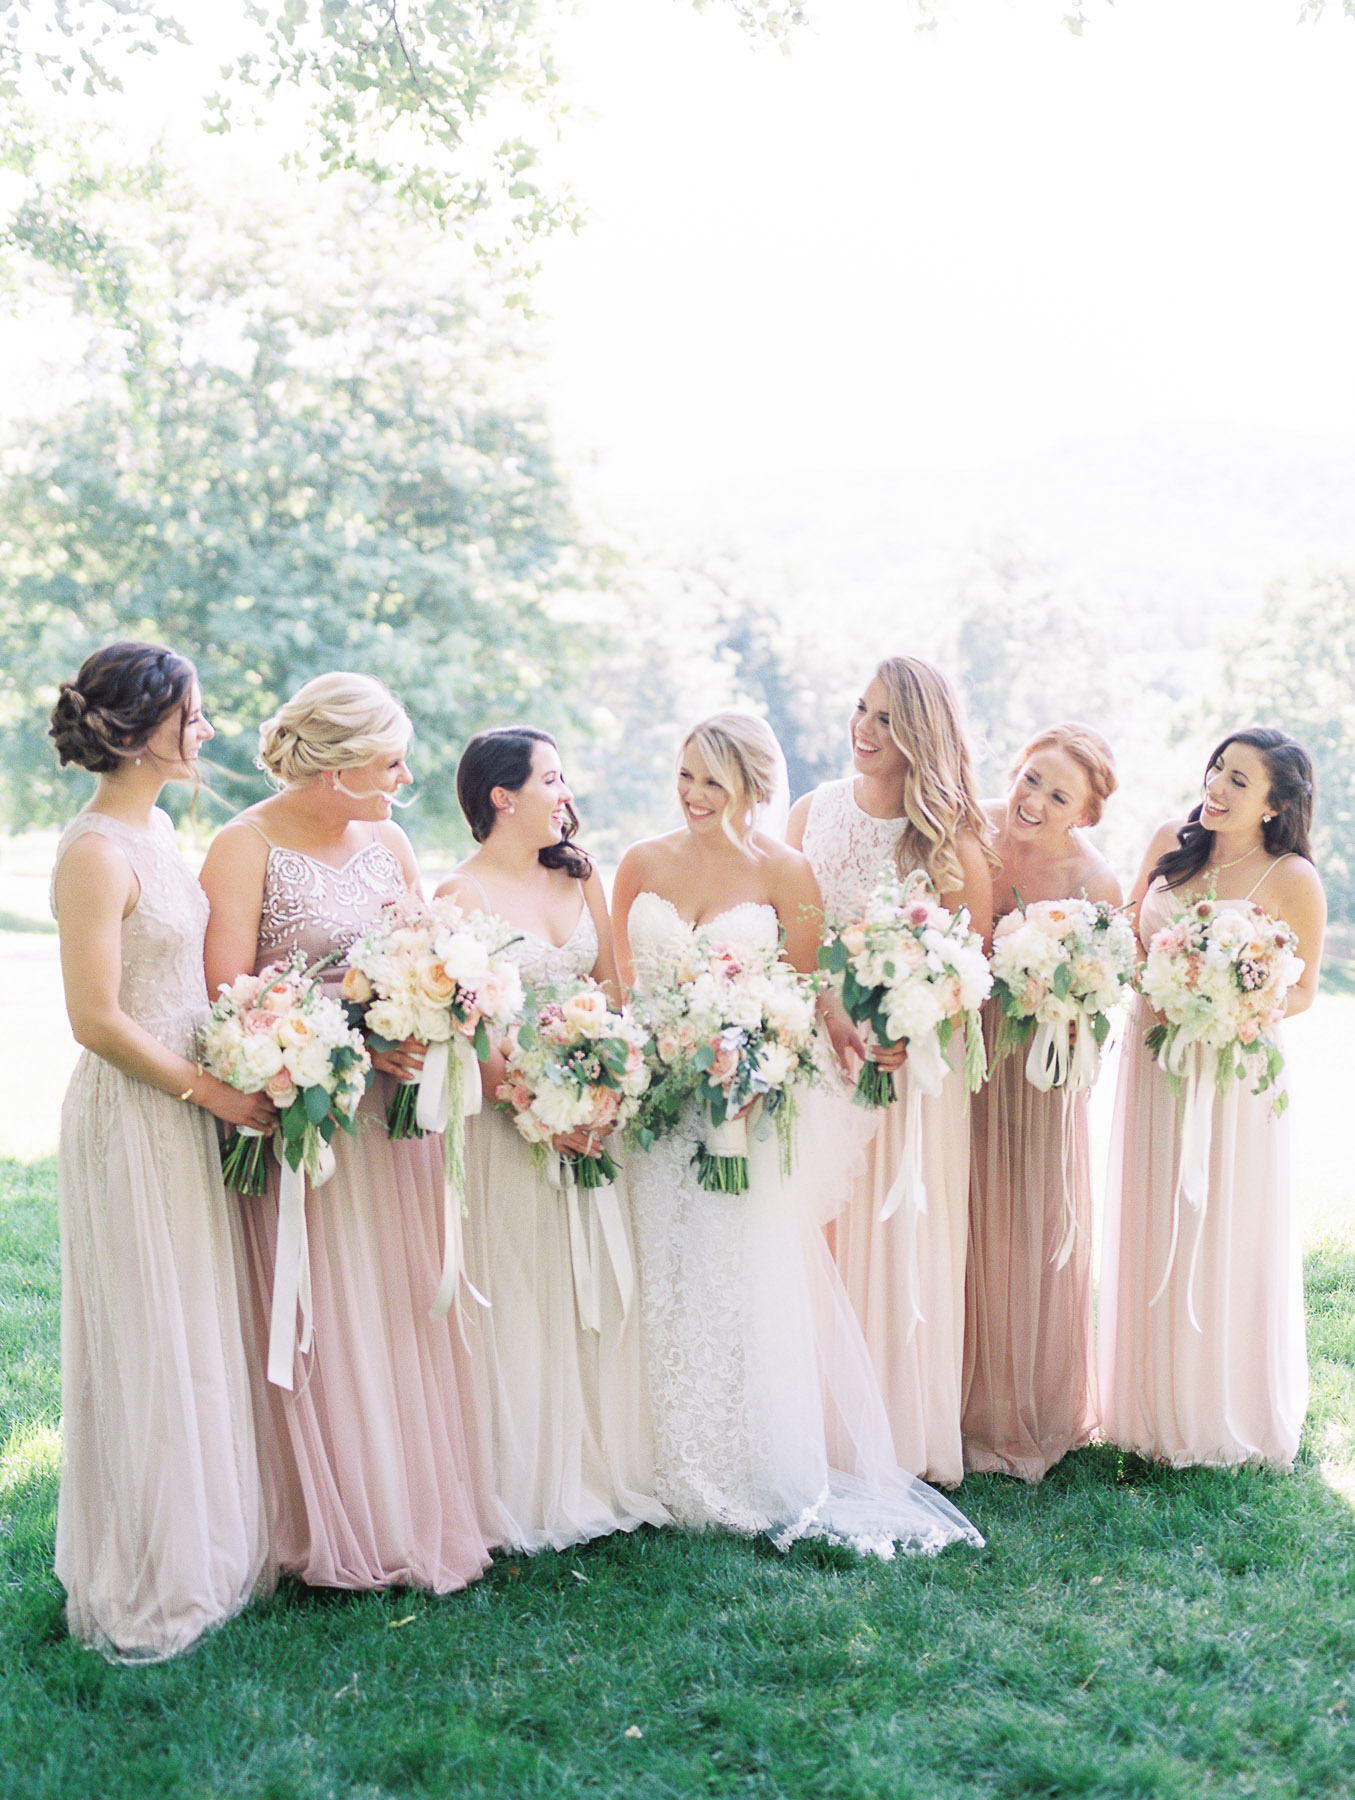 West Point Wedding by Michelle Lange Photography-35.jpg